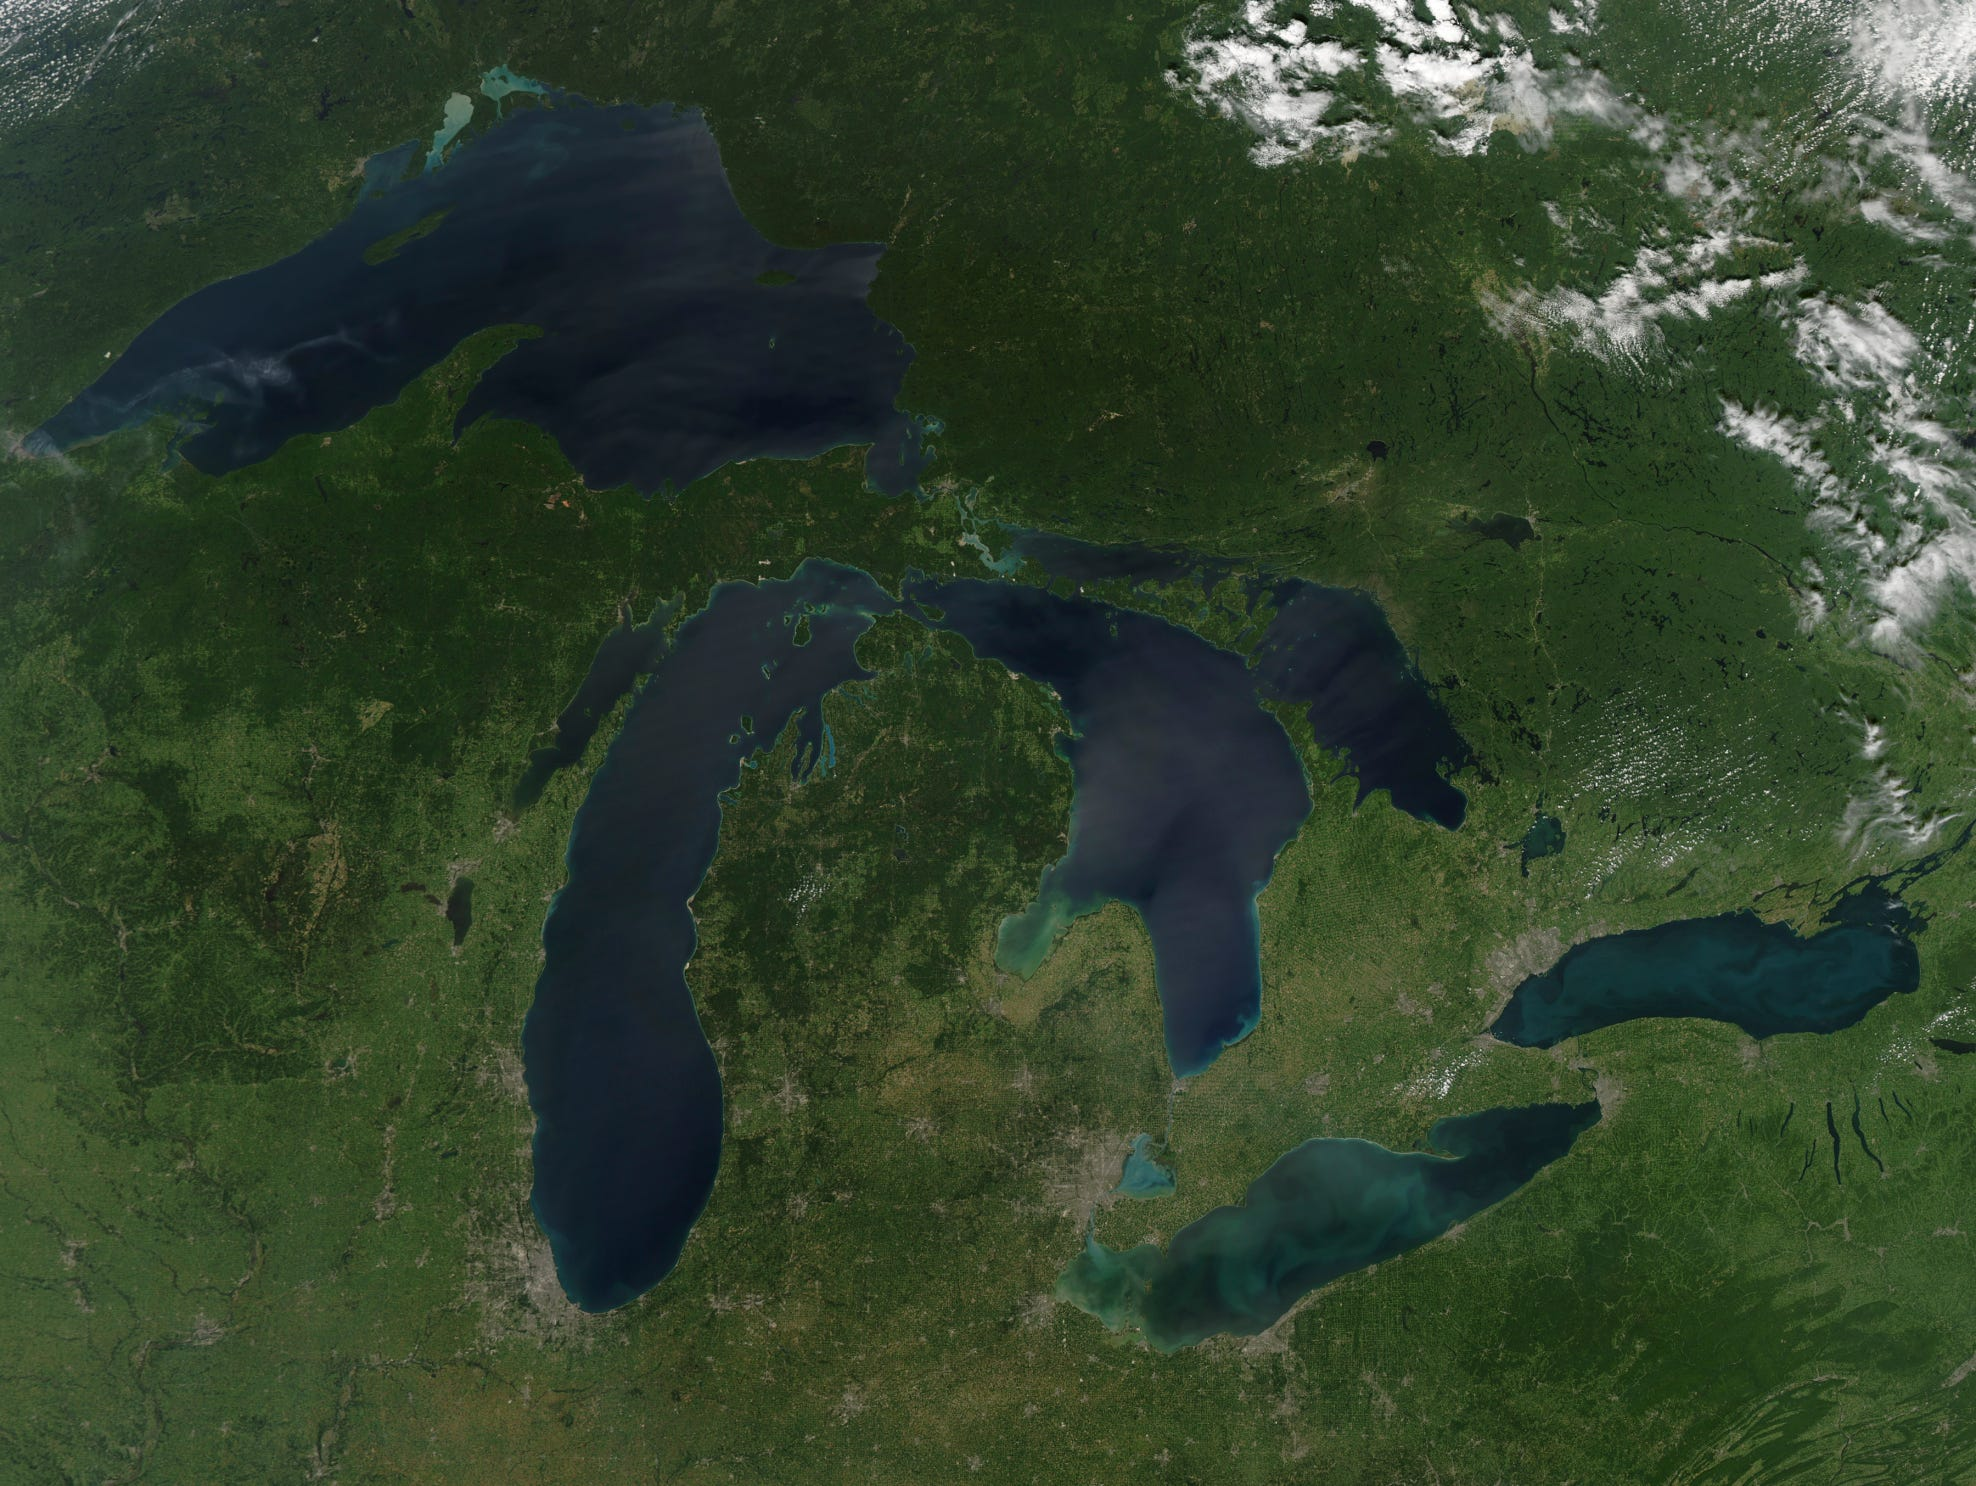 Satellite view of a cloudless summer day over the entire Great Lakes region.